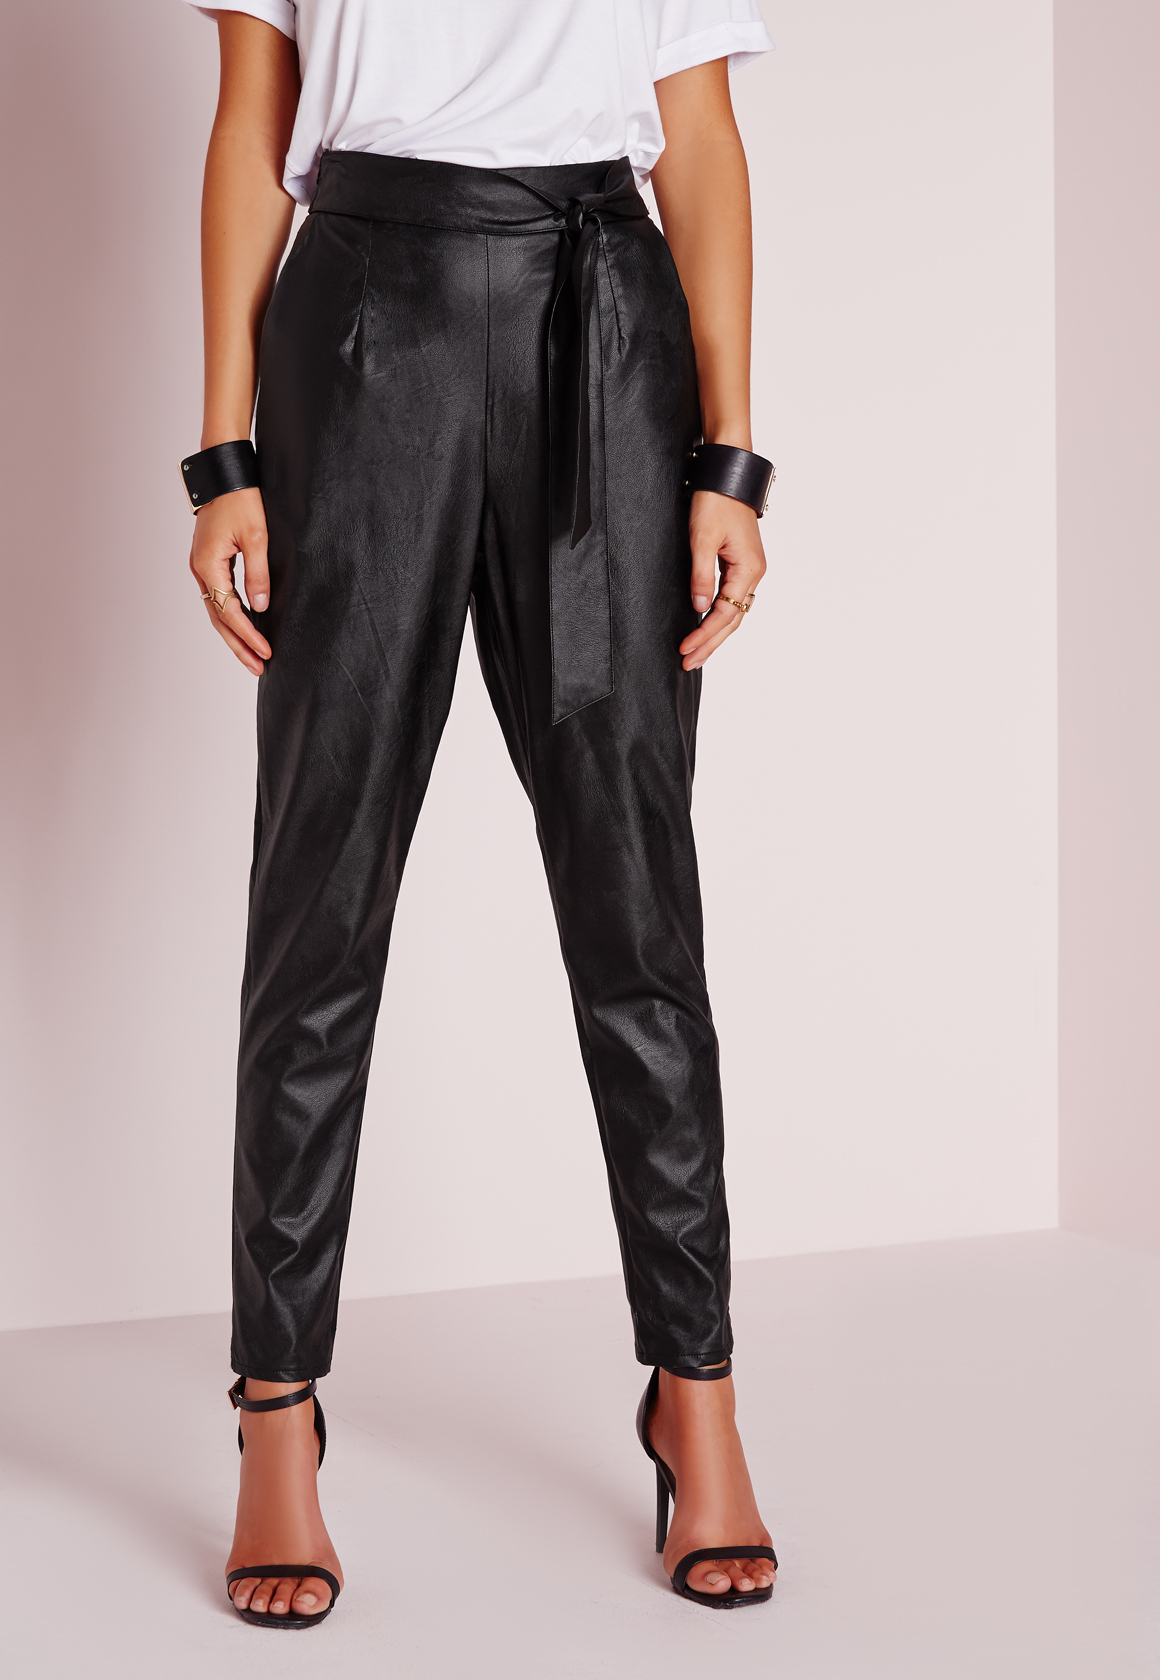 82a51d61b Lyst - Missguided Tie Waist Faux Leather Pegged Leg Trousers Black ...